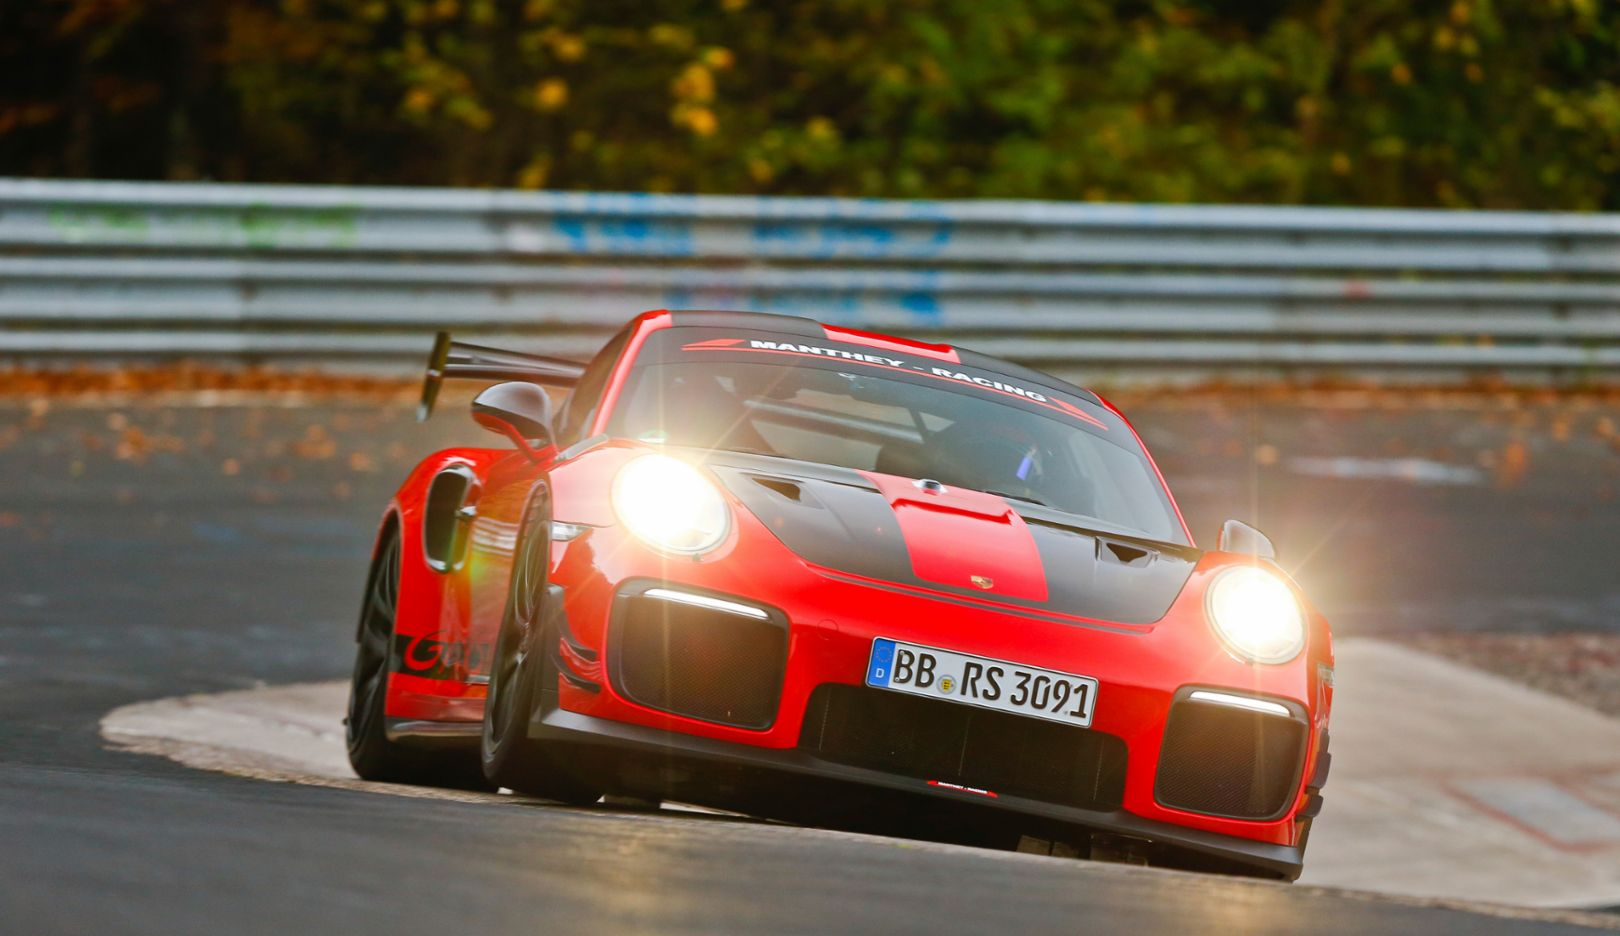 911 Gt2 Rs Mr Is The Fastest Road Legal Sports Car On The Ring